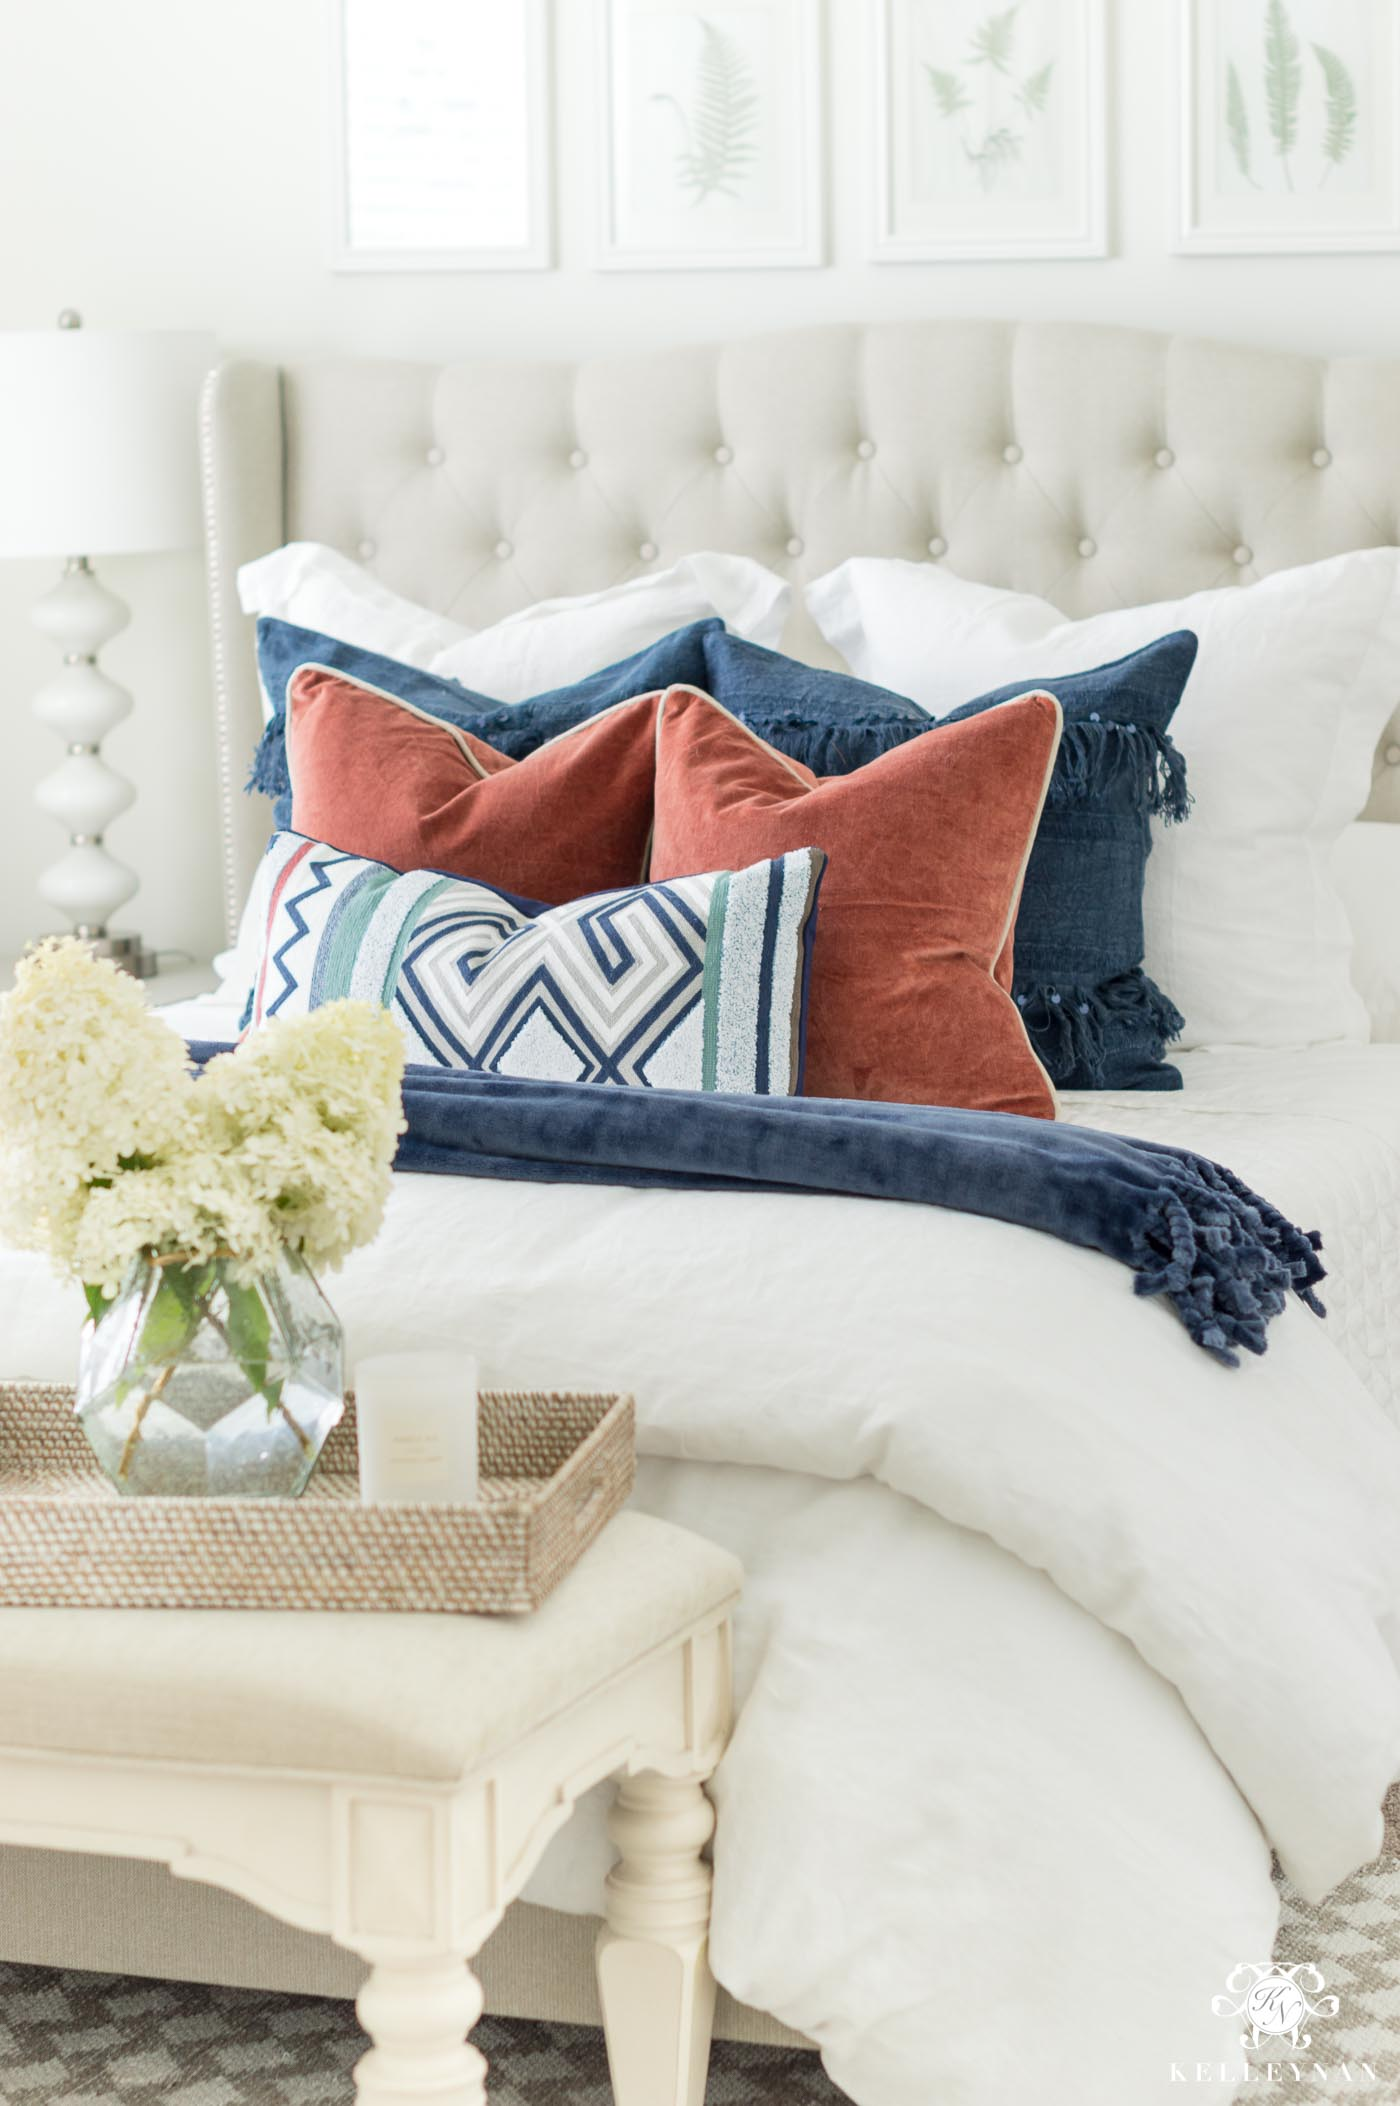 Mixing and matching pillows and patterns on best linen bedding